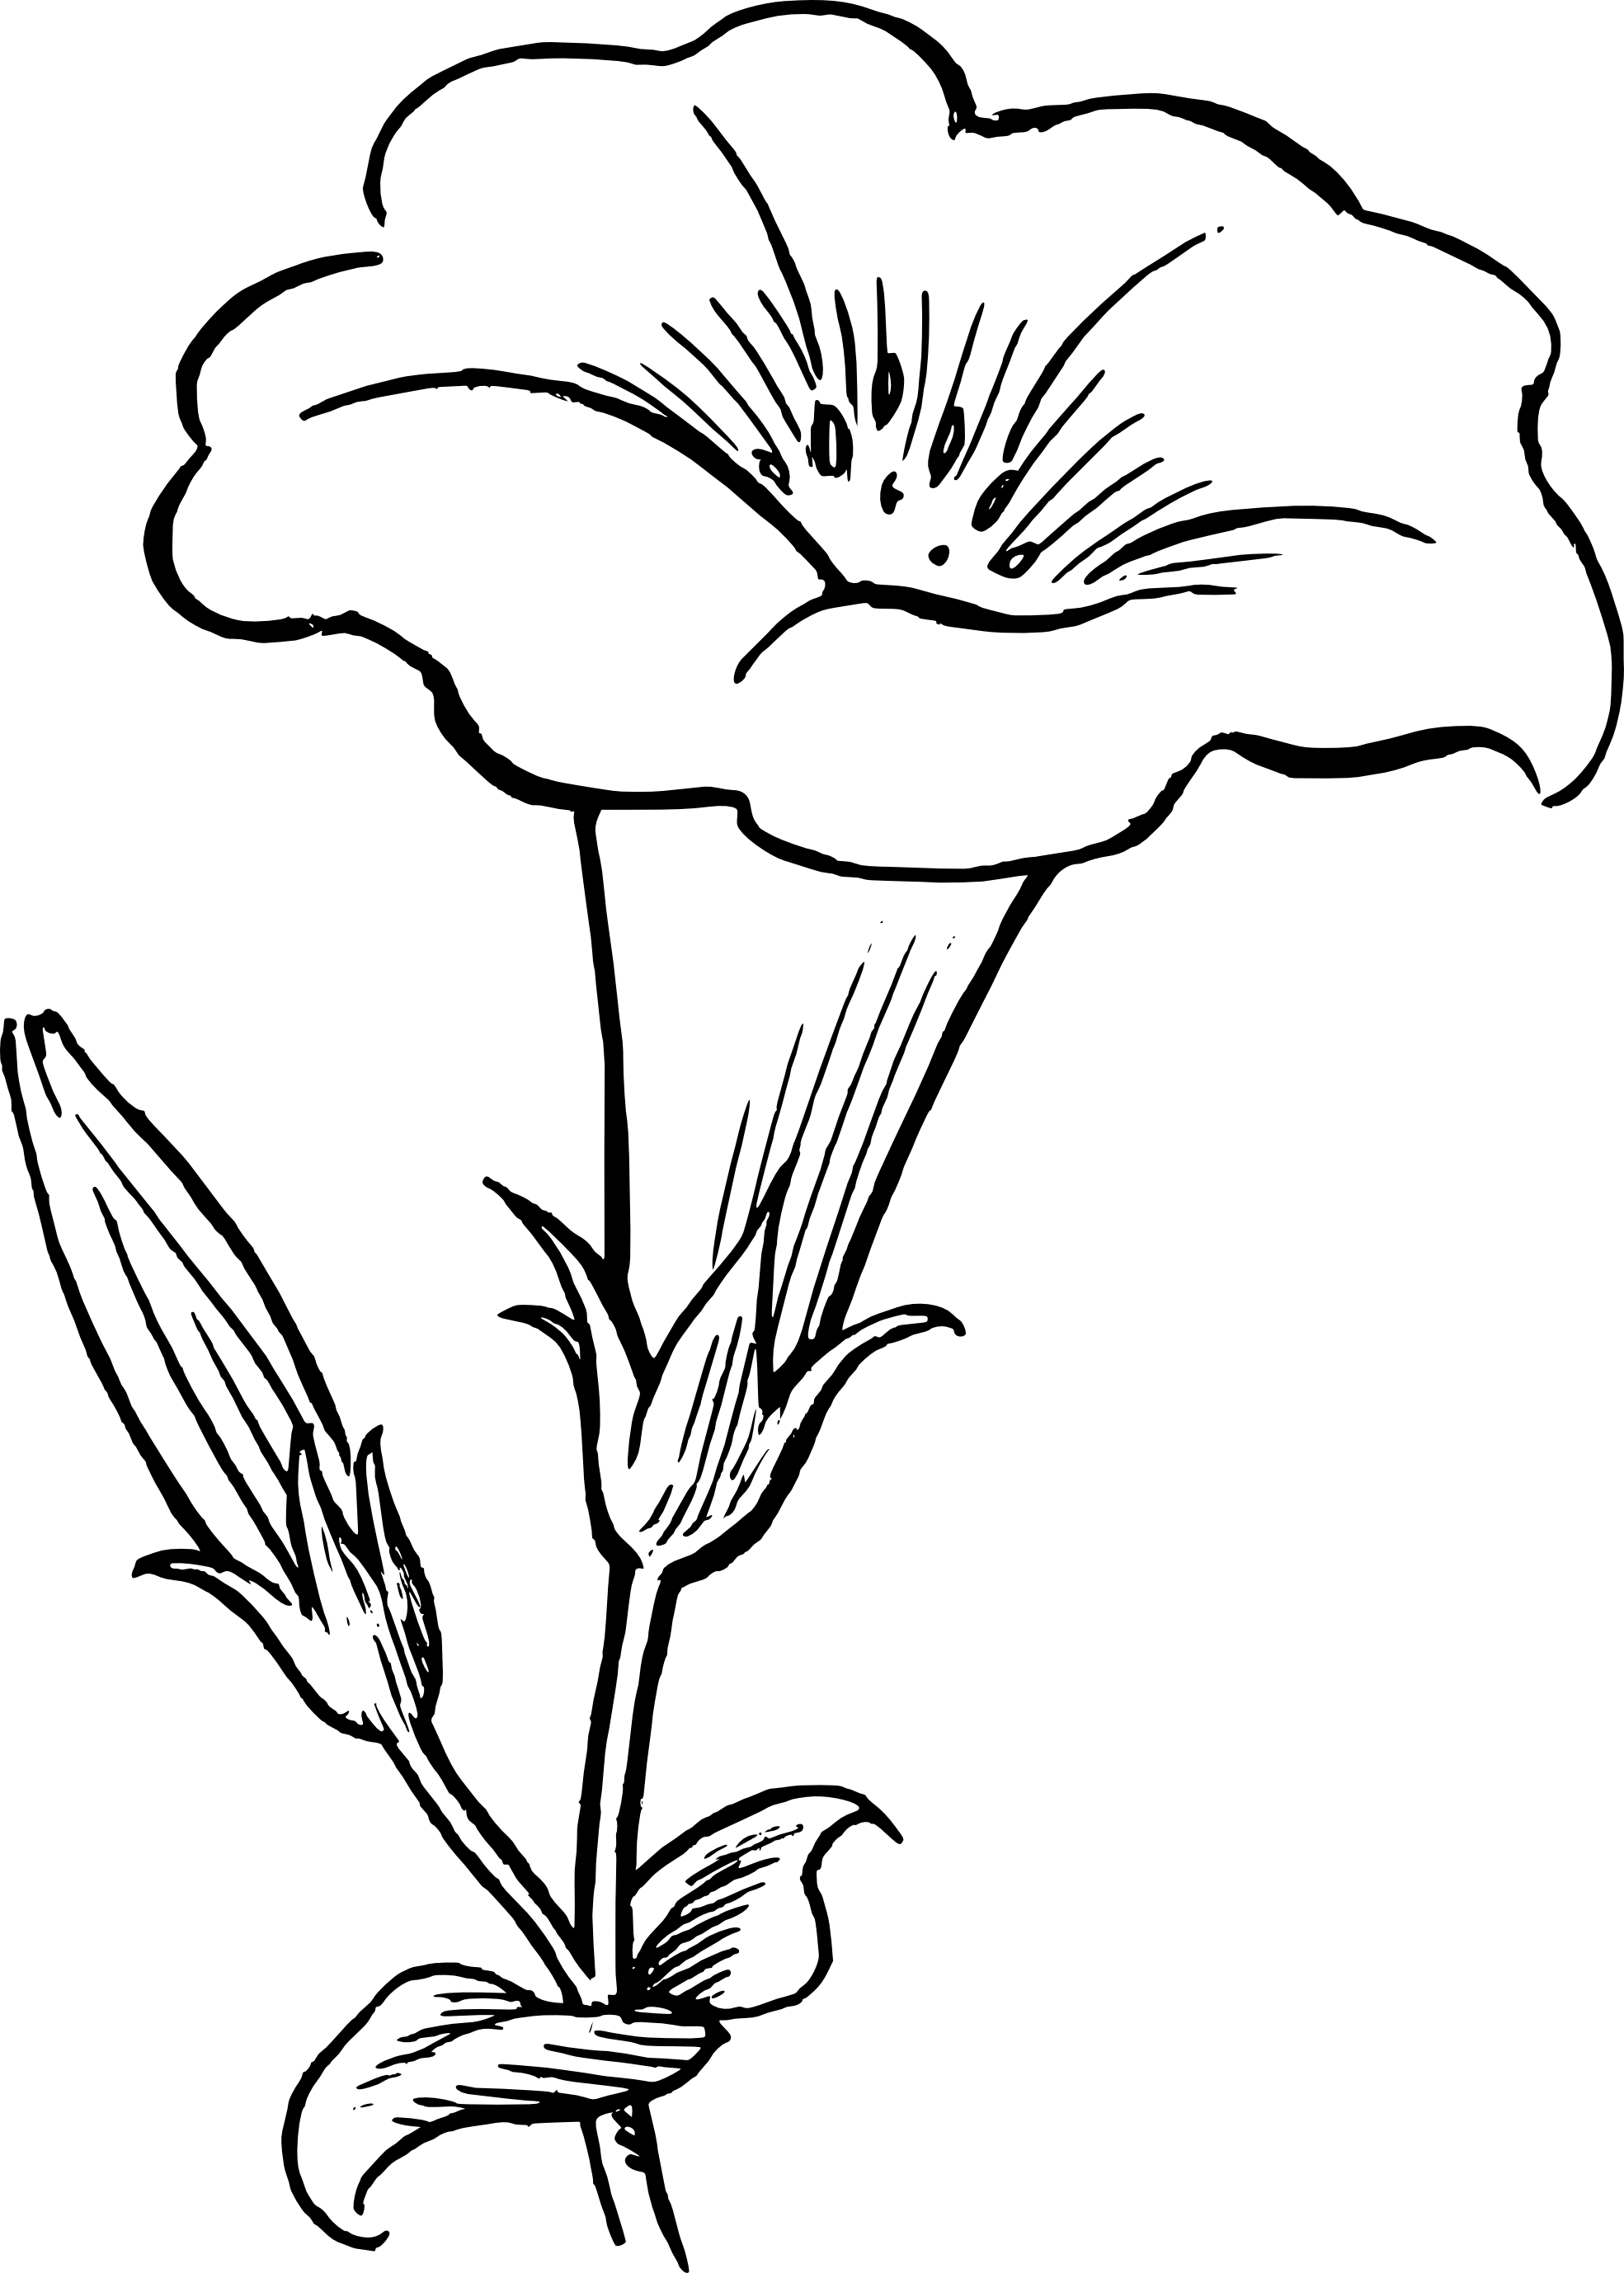 Black and white flower drawing clipart panda free clipart images black and white flower drawing clipart panda free clipart images thecheapjerseys Choice Image